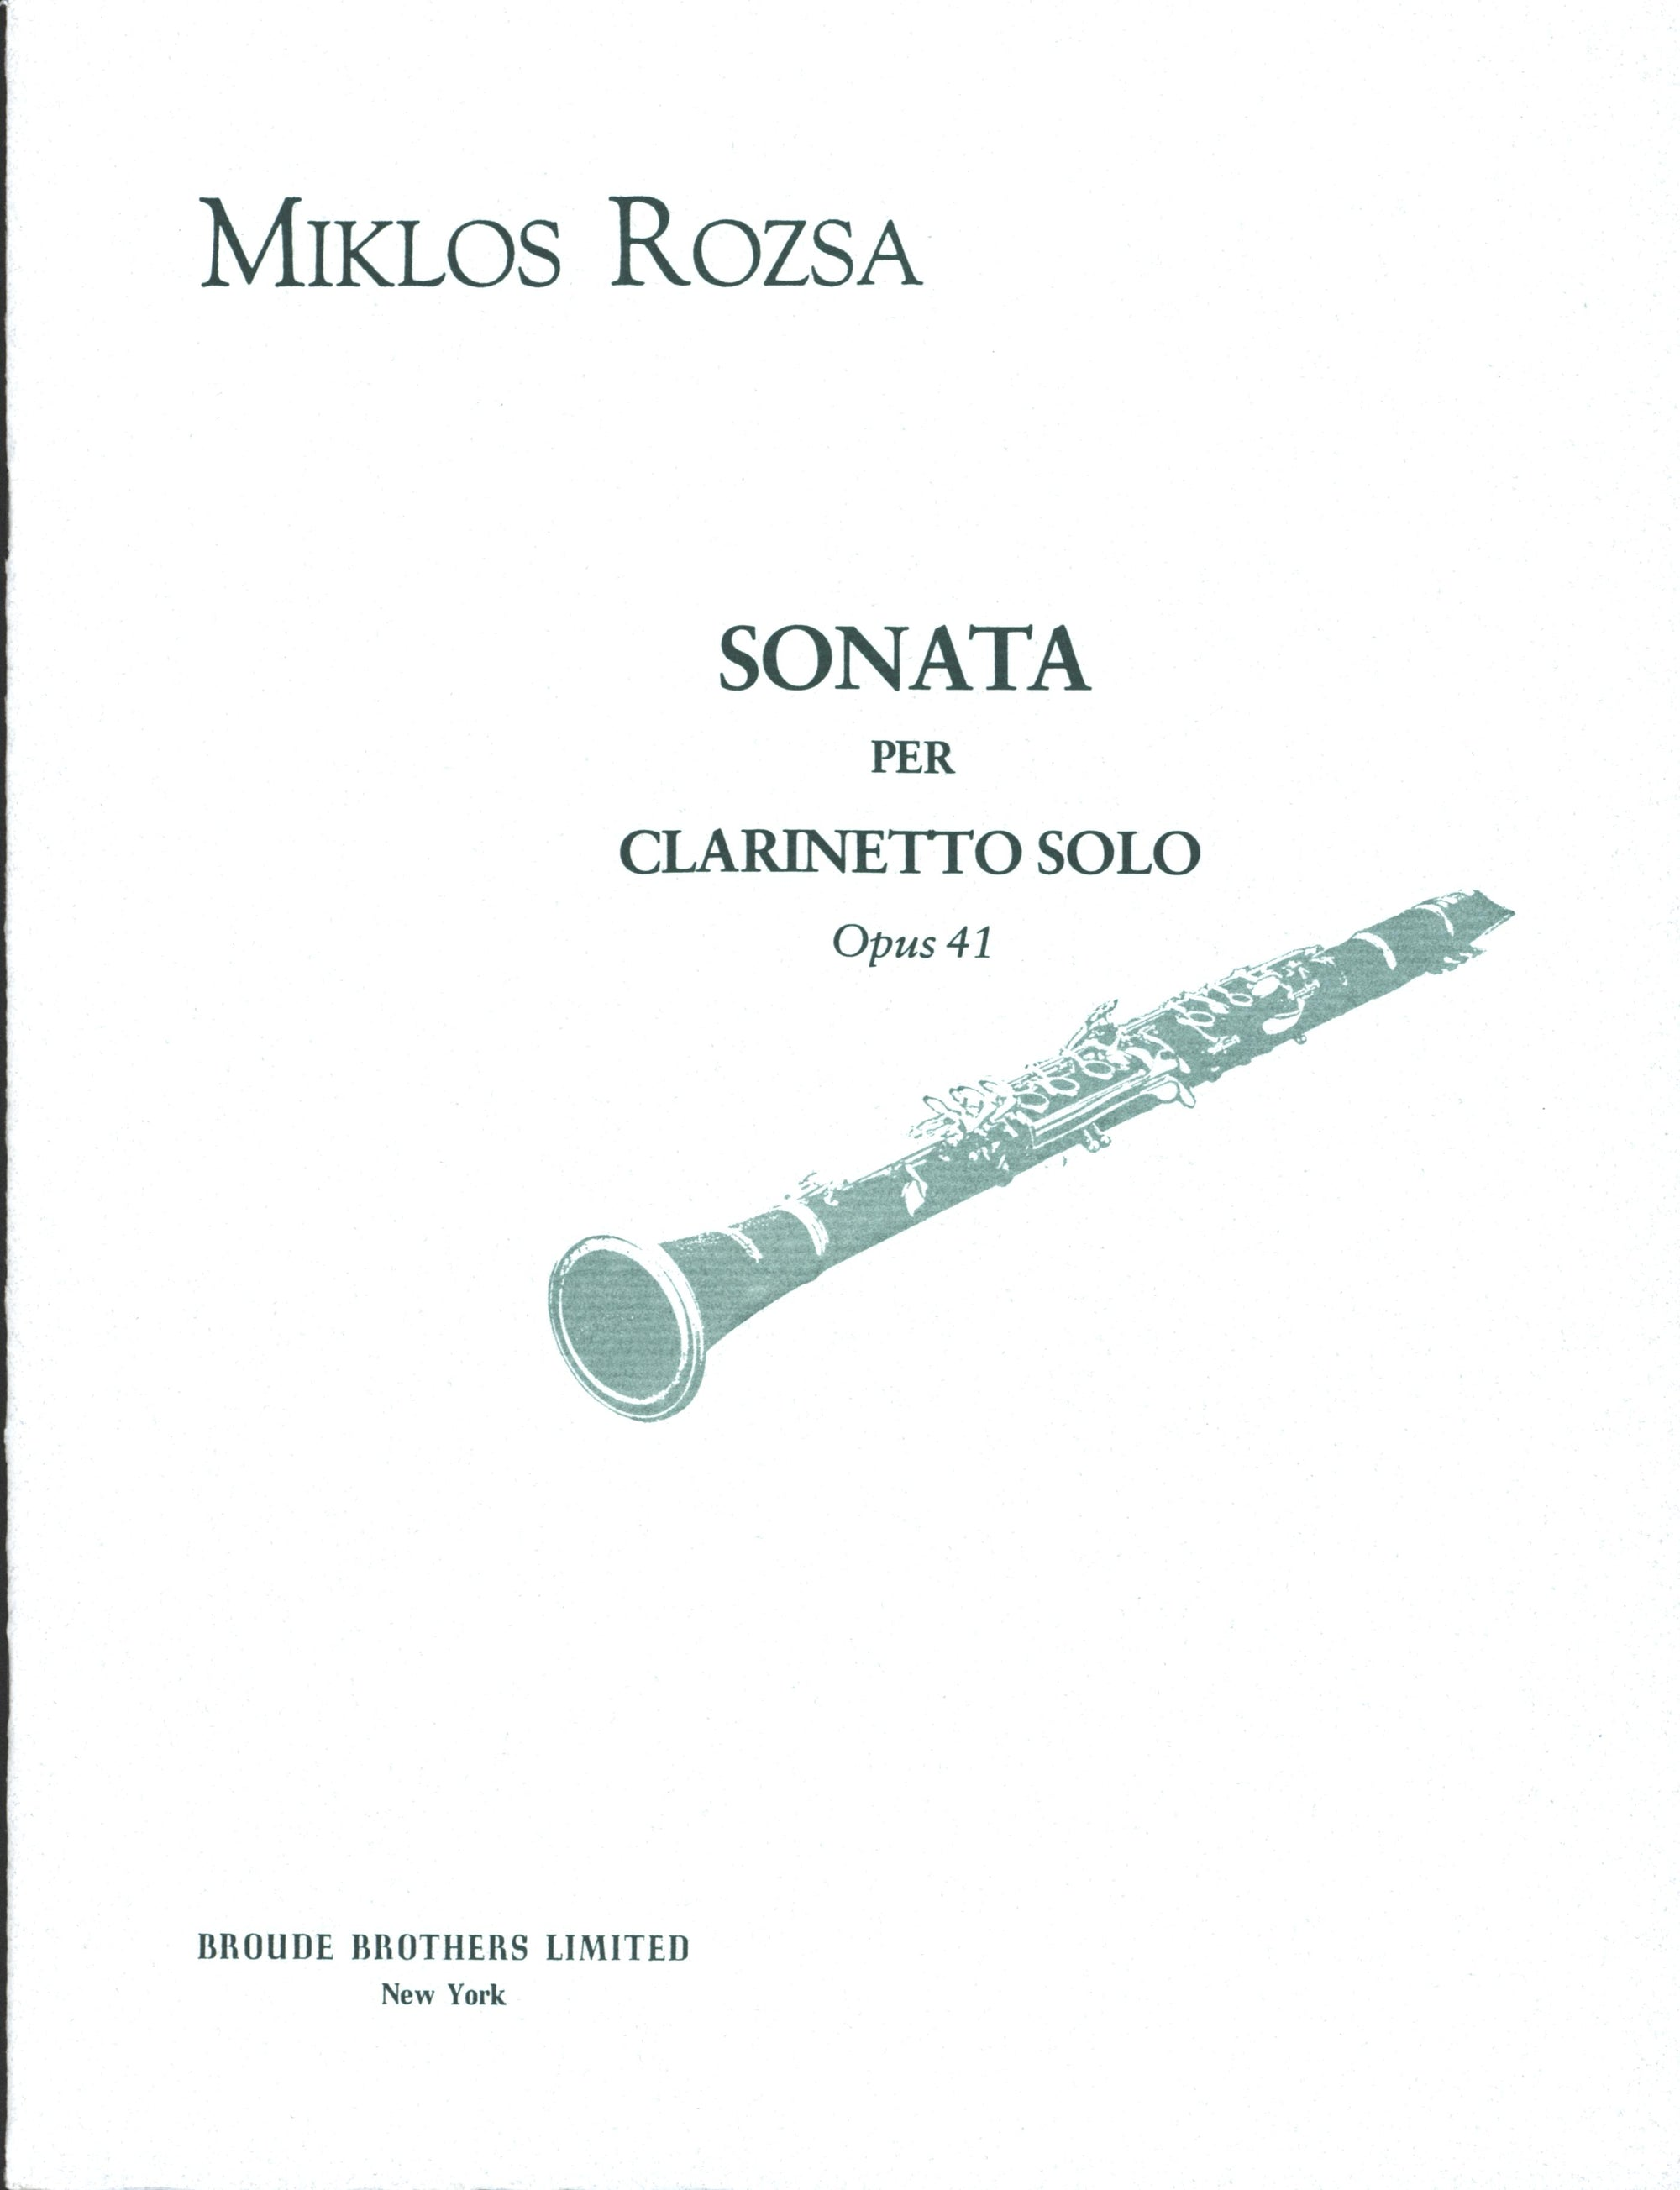 Rózsa: Sonata for Solo Clarinet, Op. 41